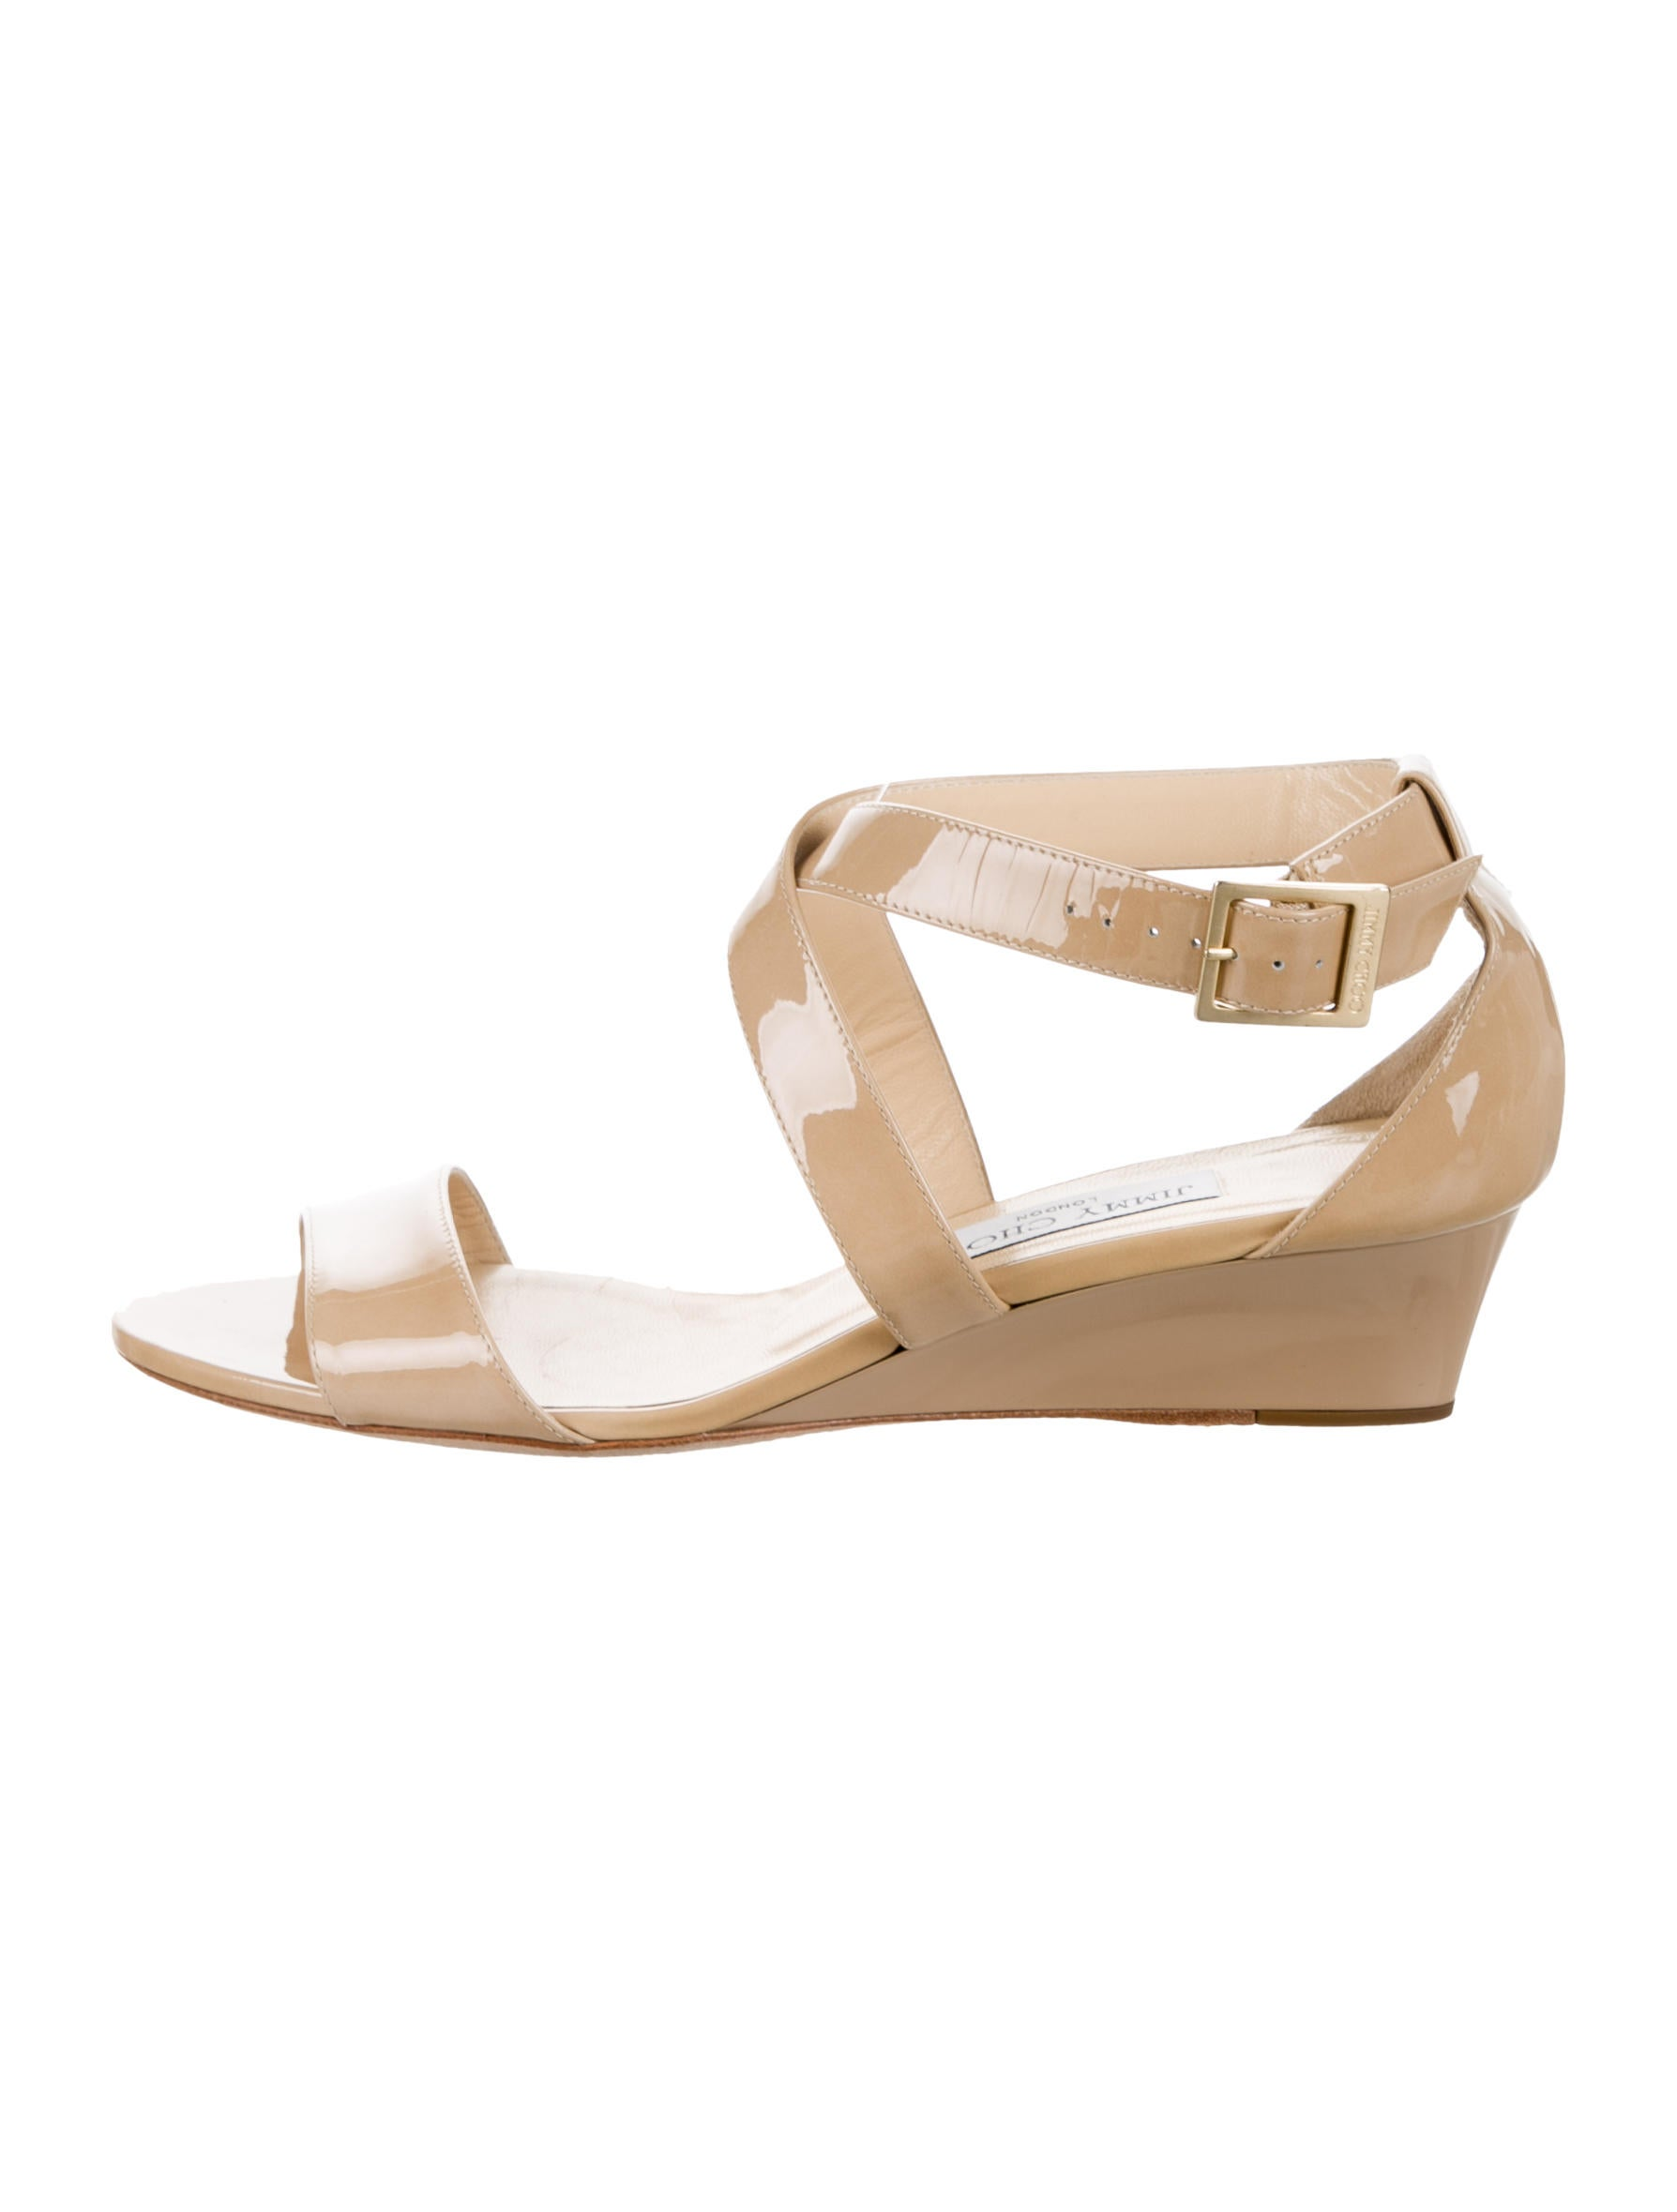 jimmy choo patent leather wedge sandals shoes jim61001